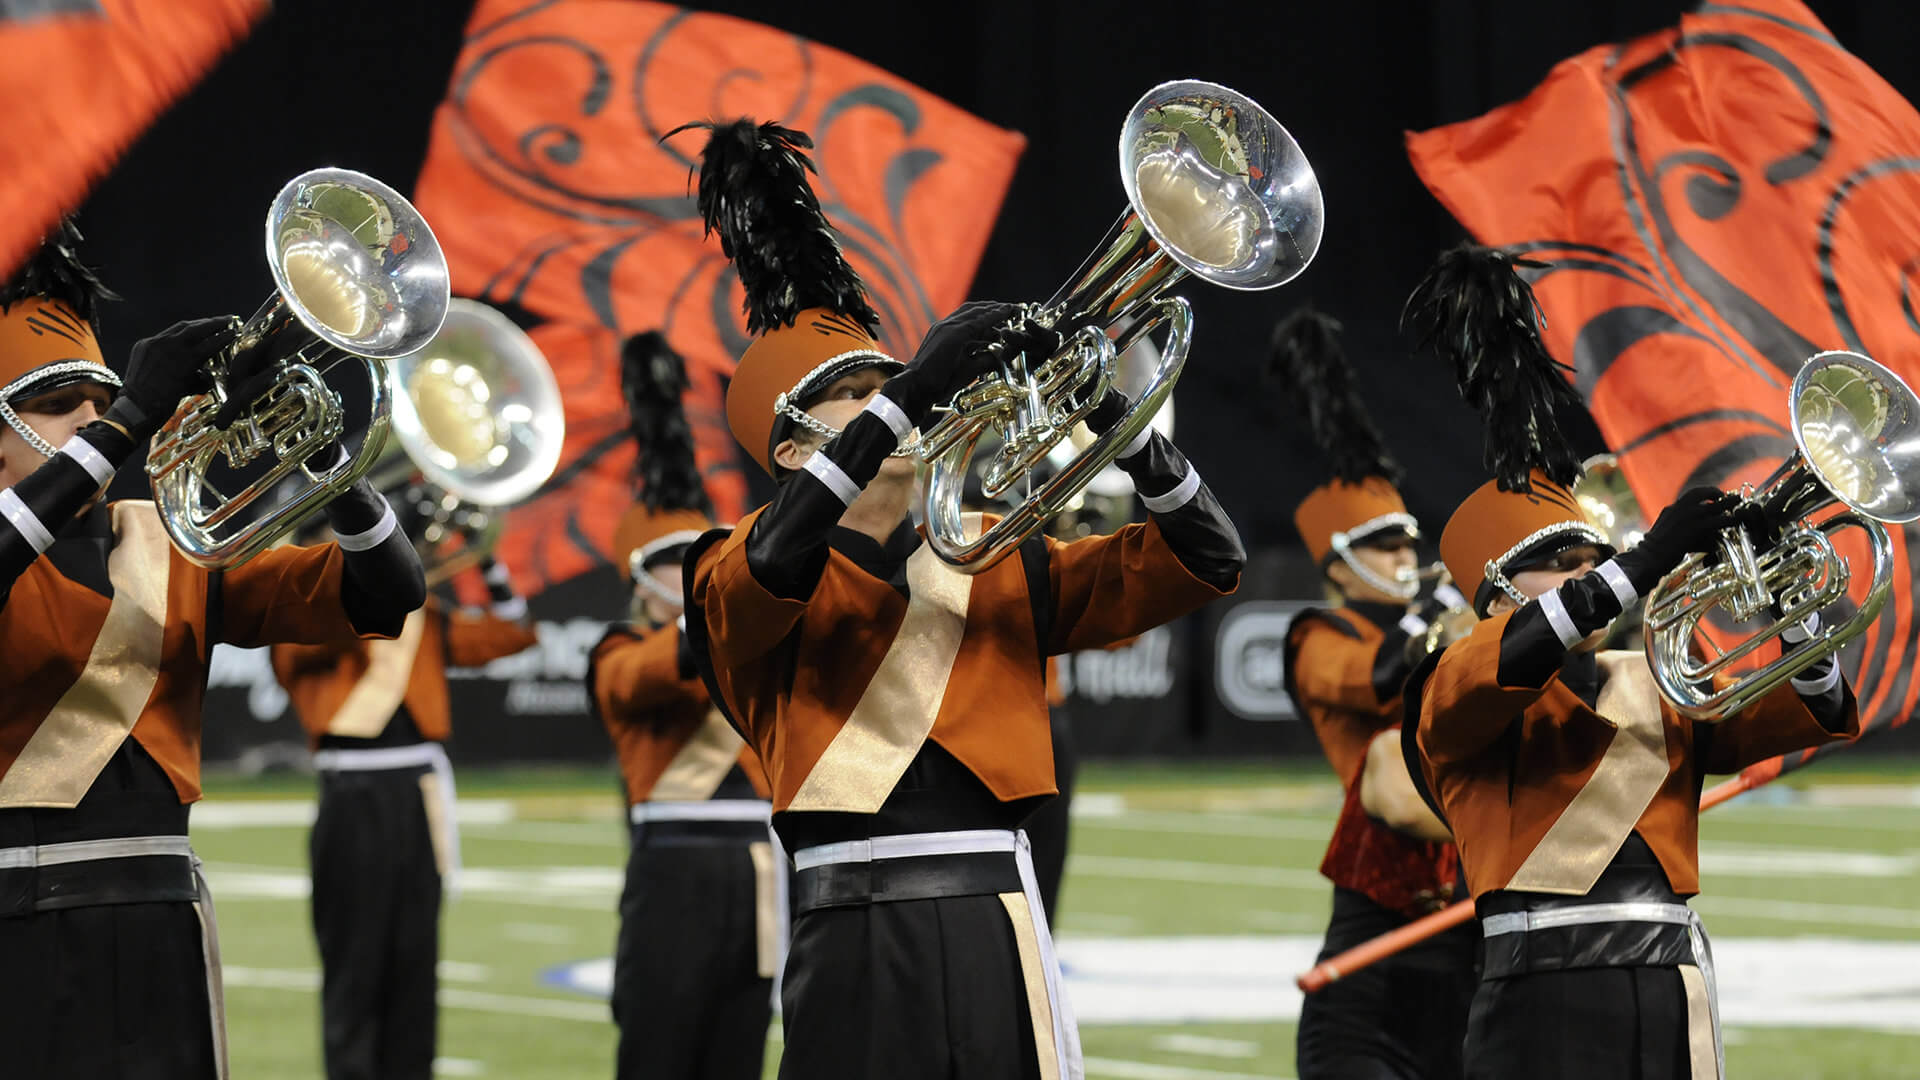 Spotlight of the Week: 2009 Mandarins